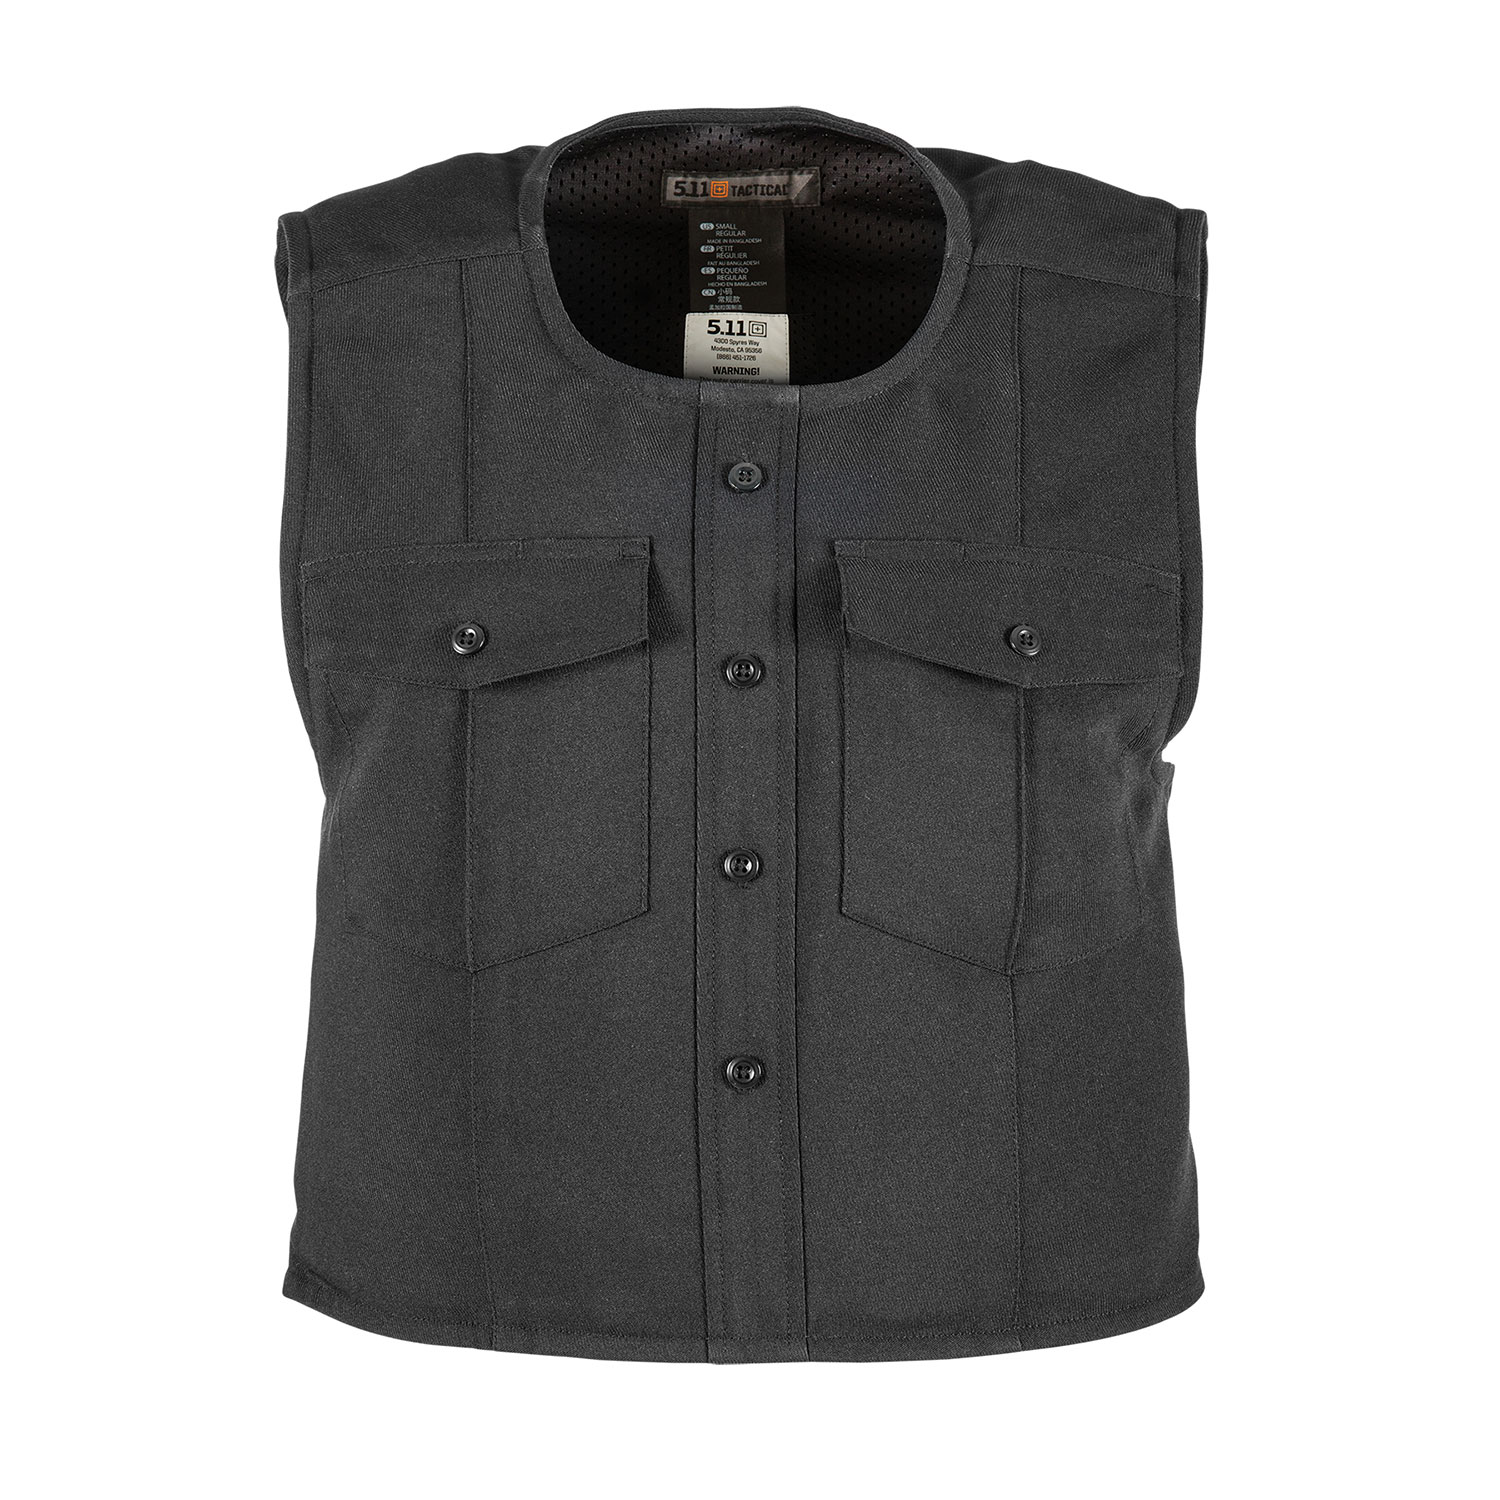 5.11 Women's Class A Uniform Outer Vest Carrier